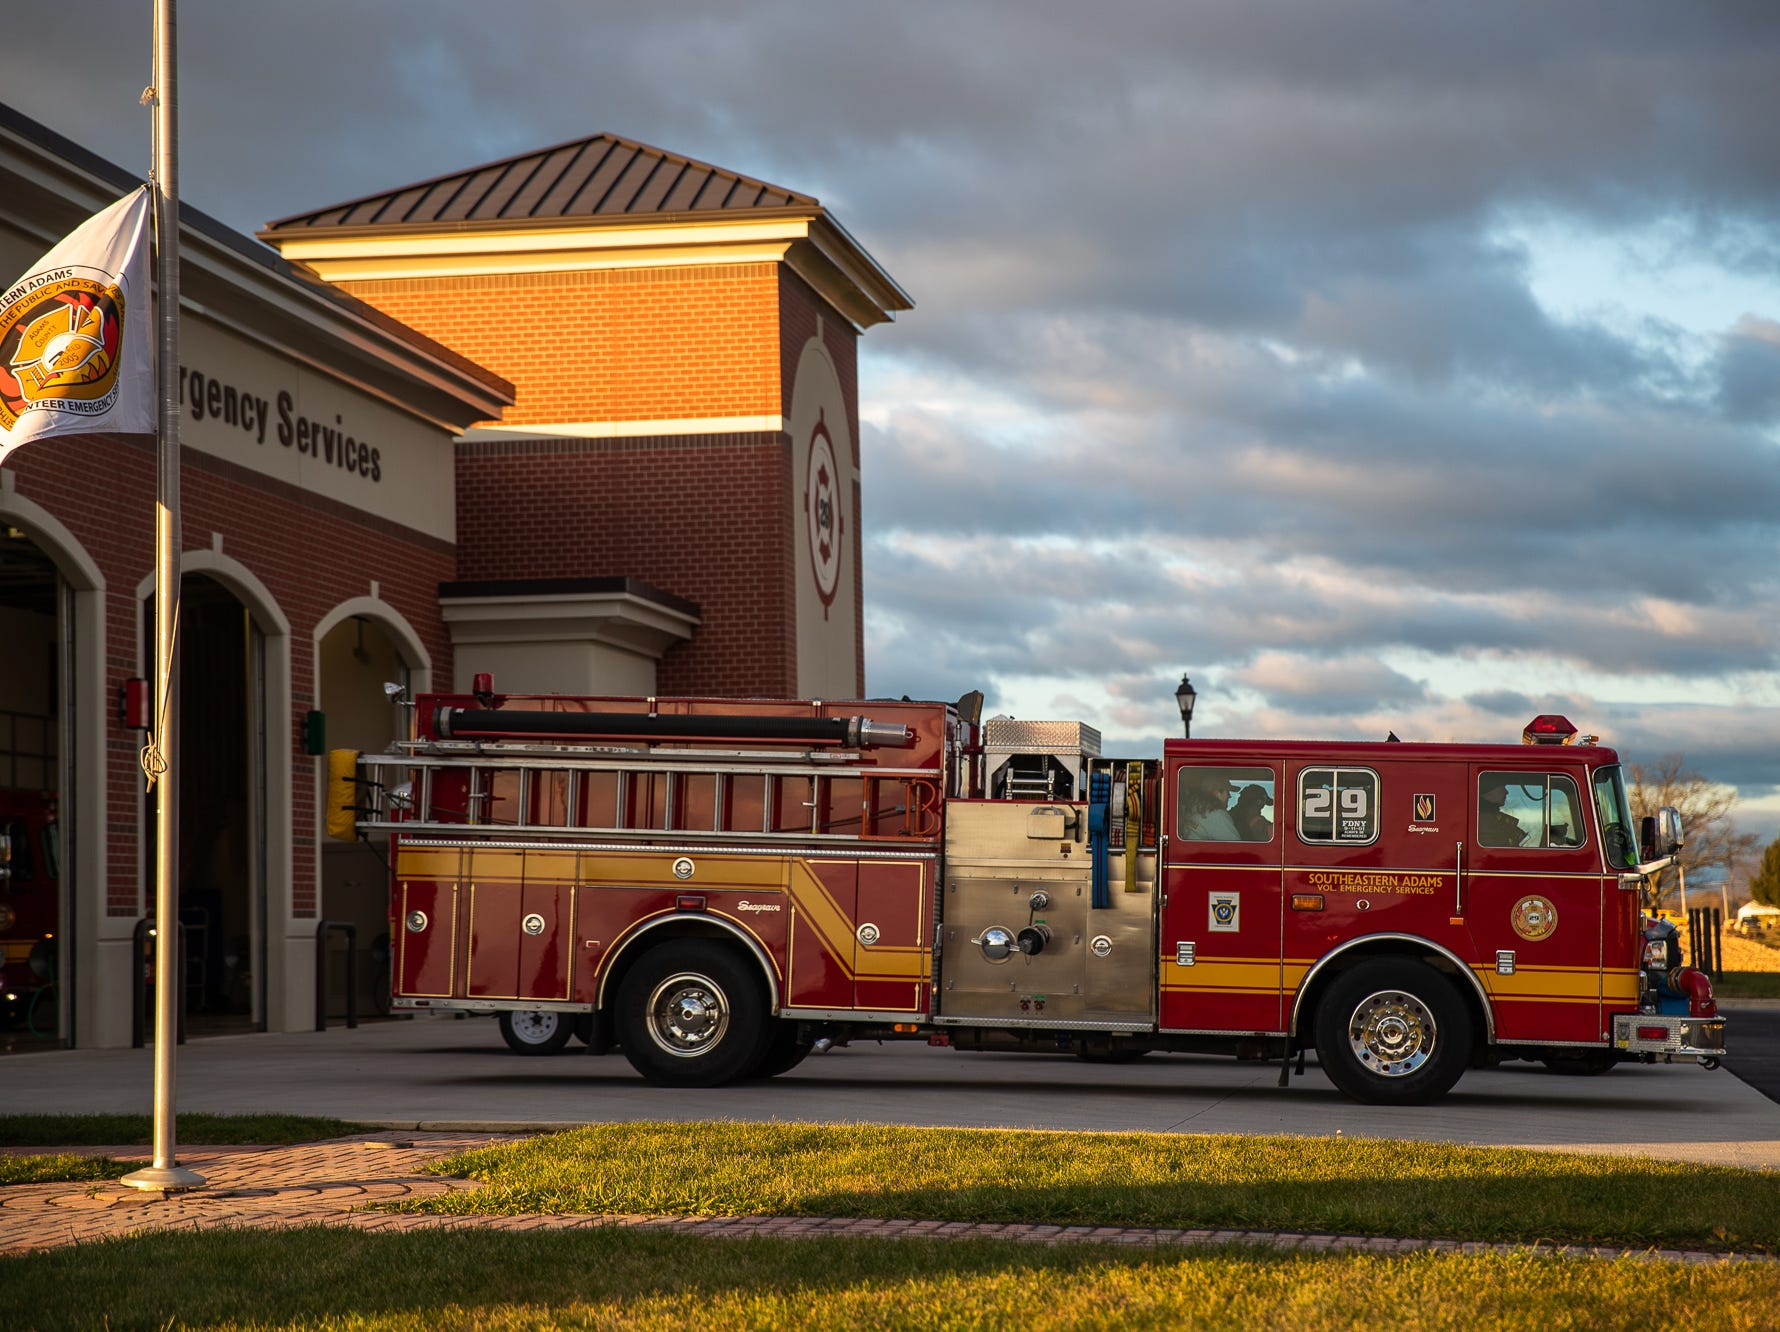 Engine-Tanker 29 prepares to roll out at the Southeastern Adams County Volunteer Emergency Services fire station during the S.A.V.E.S Project Santa, Saturday, Dec. 22, 2018, in McSherrystown Borough. The S.A.V.E.S Project Santa donated food, toys, and clothing to 12 local families in need.